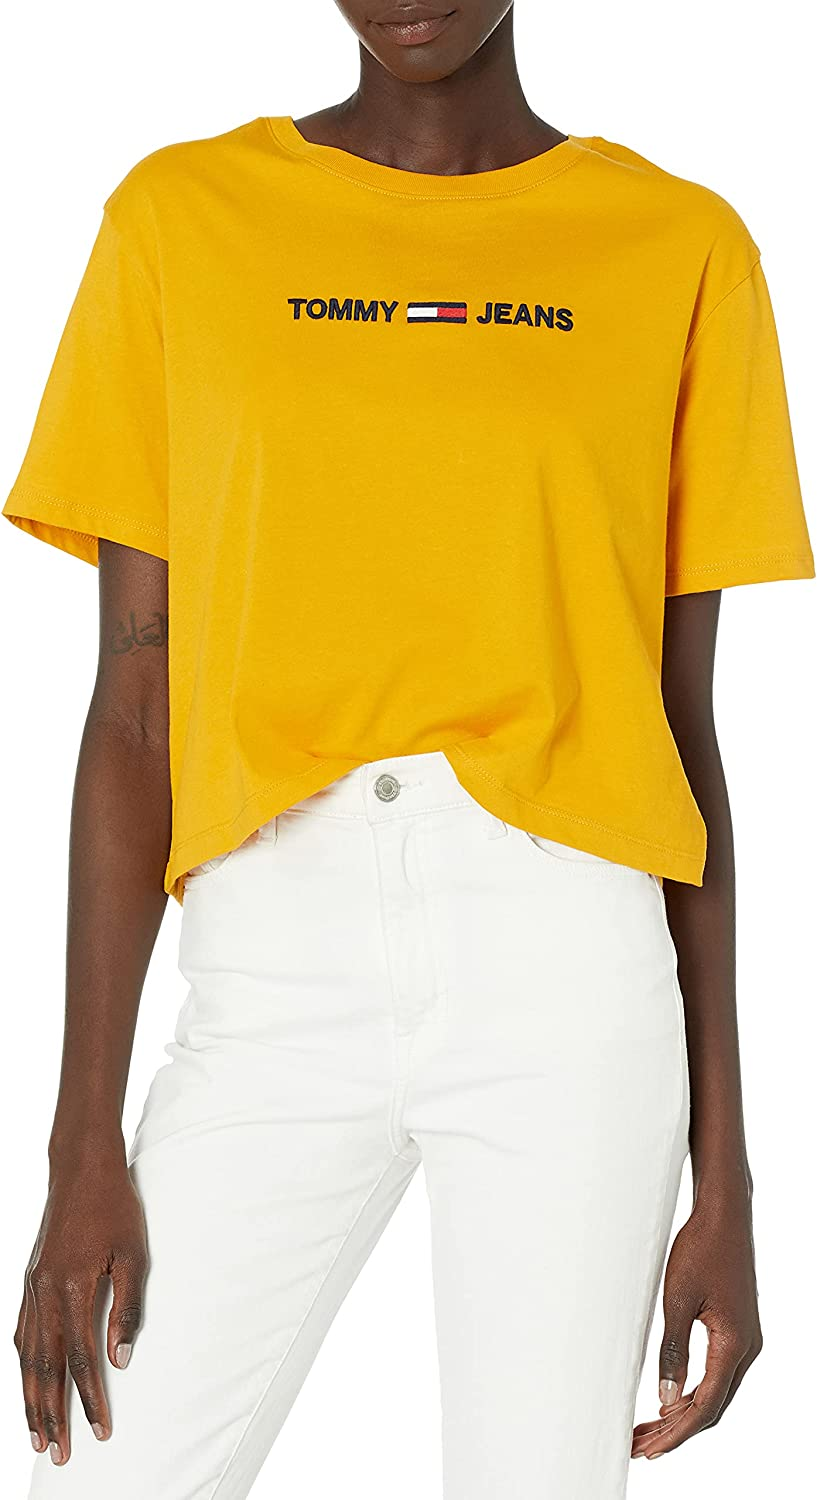 Tommy Hilfiger Women's Classic Graphic T-Shirt